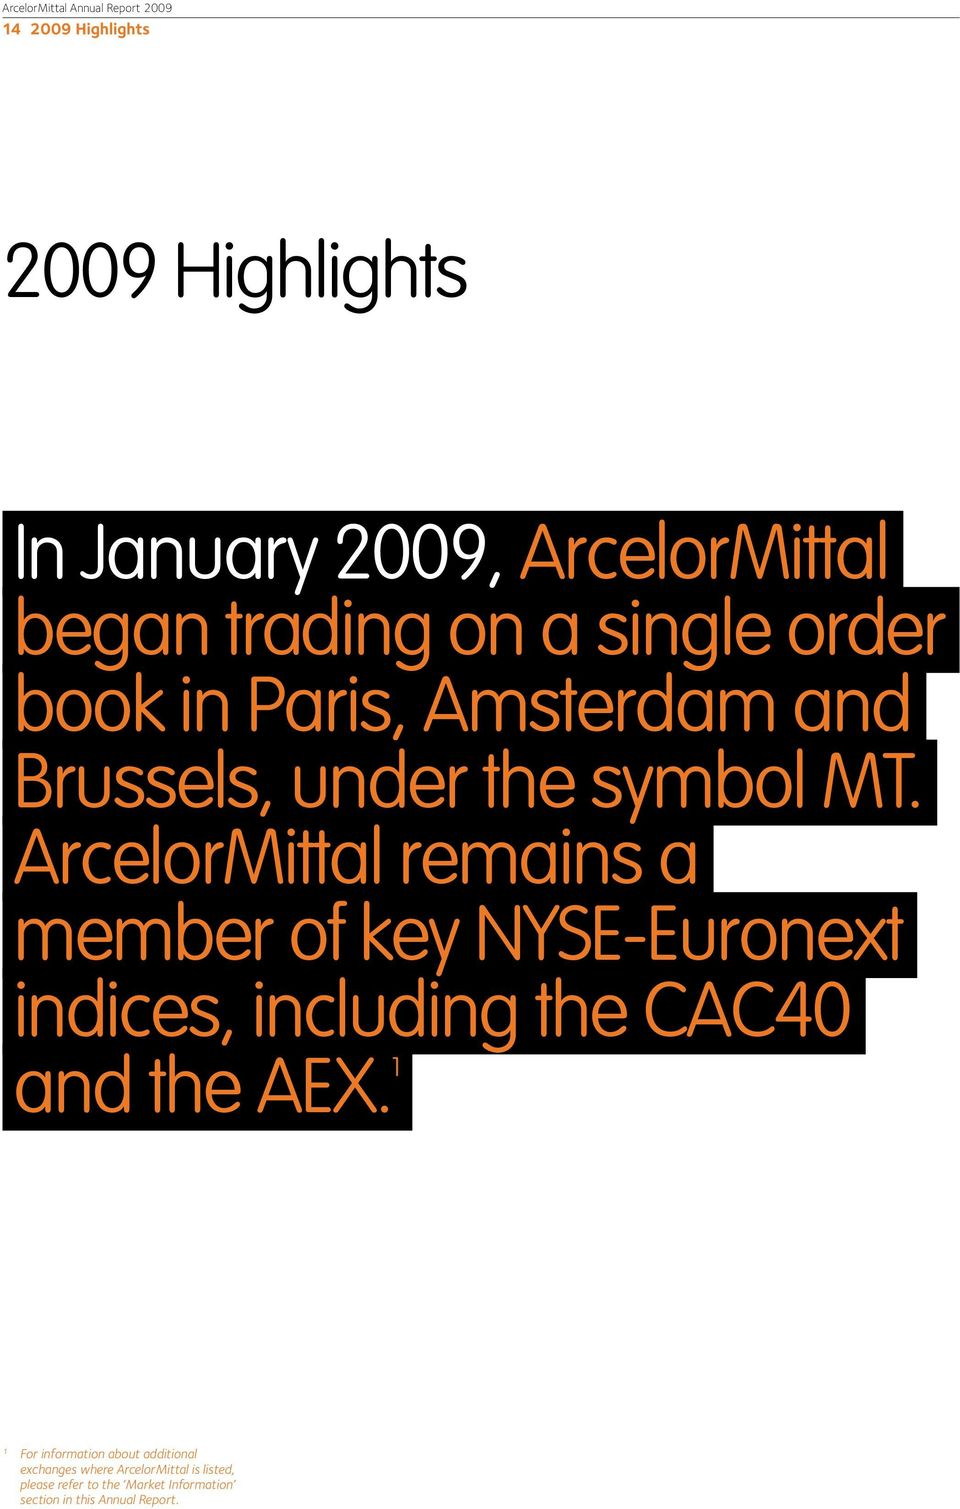 ArcelorMittal remains a member of key NYSE-Euronext indices, including the CAC40 and the AEX.